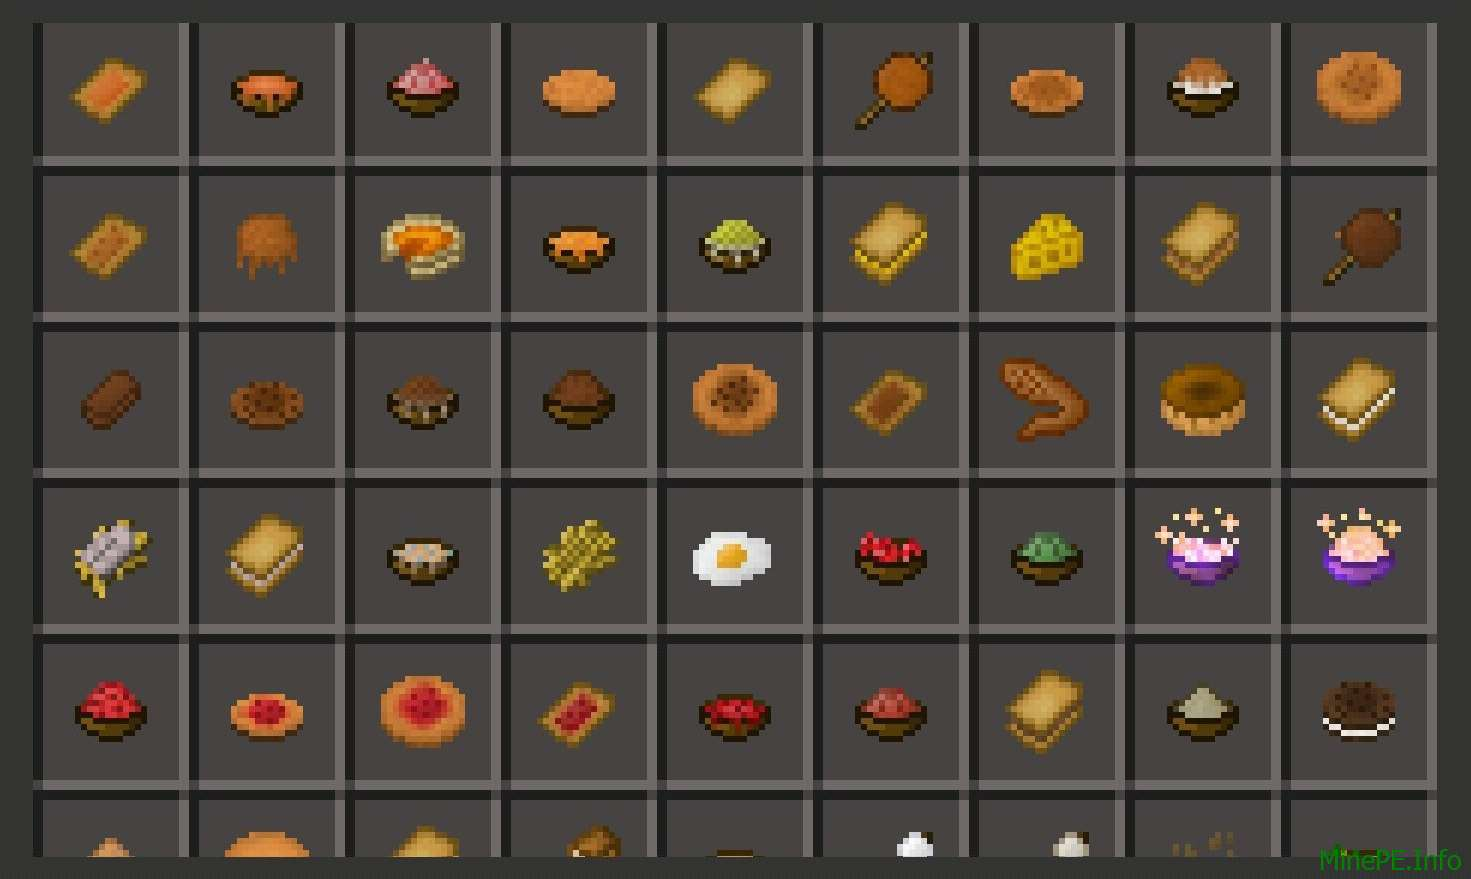 Мод Usefull Food PE 0.14.0 / 0.14.1 / 0.14.2 / 0.14.3